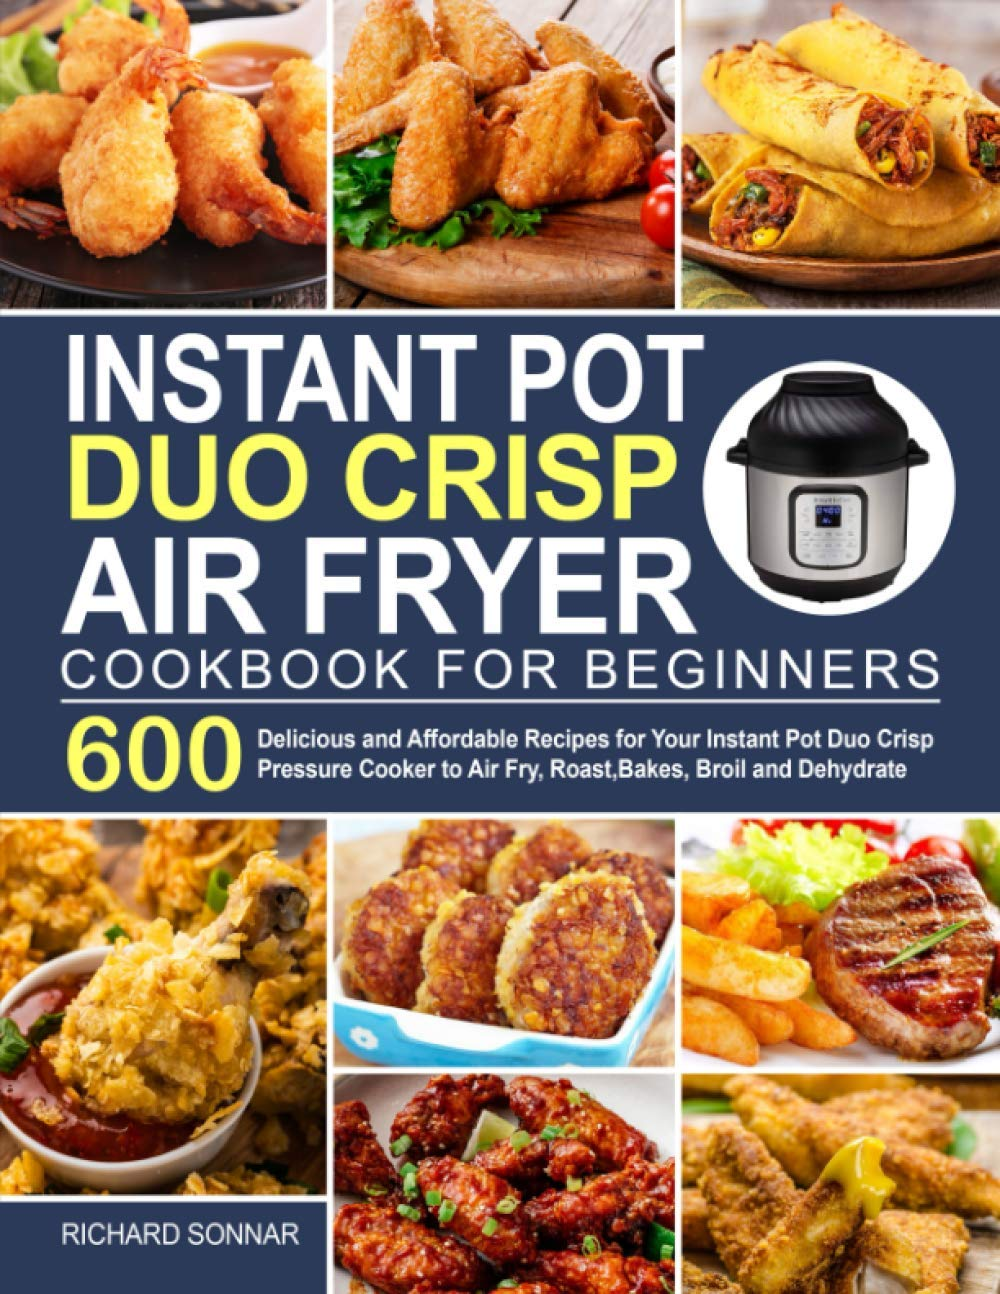 Top 10 Best the instant pot electric pressure cooker cookbook Reviews